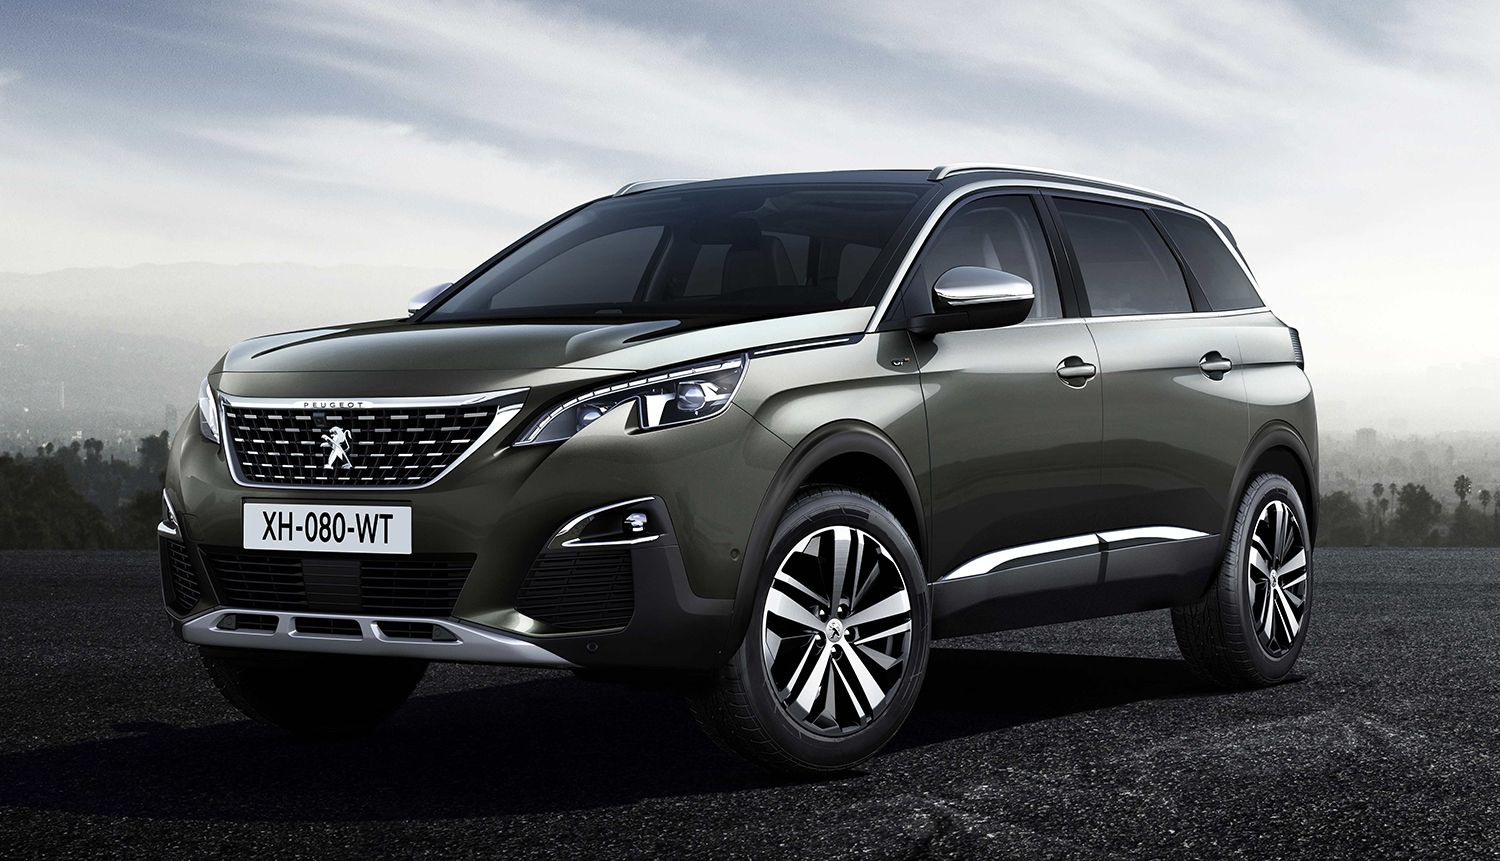 2019 Peugeot 3008 And 5008 Thai Prices And Specs Com Imagens